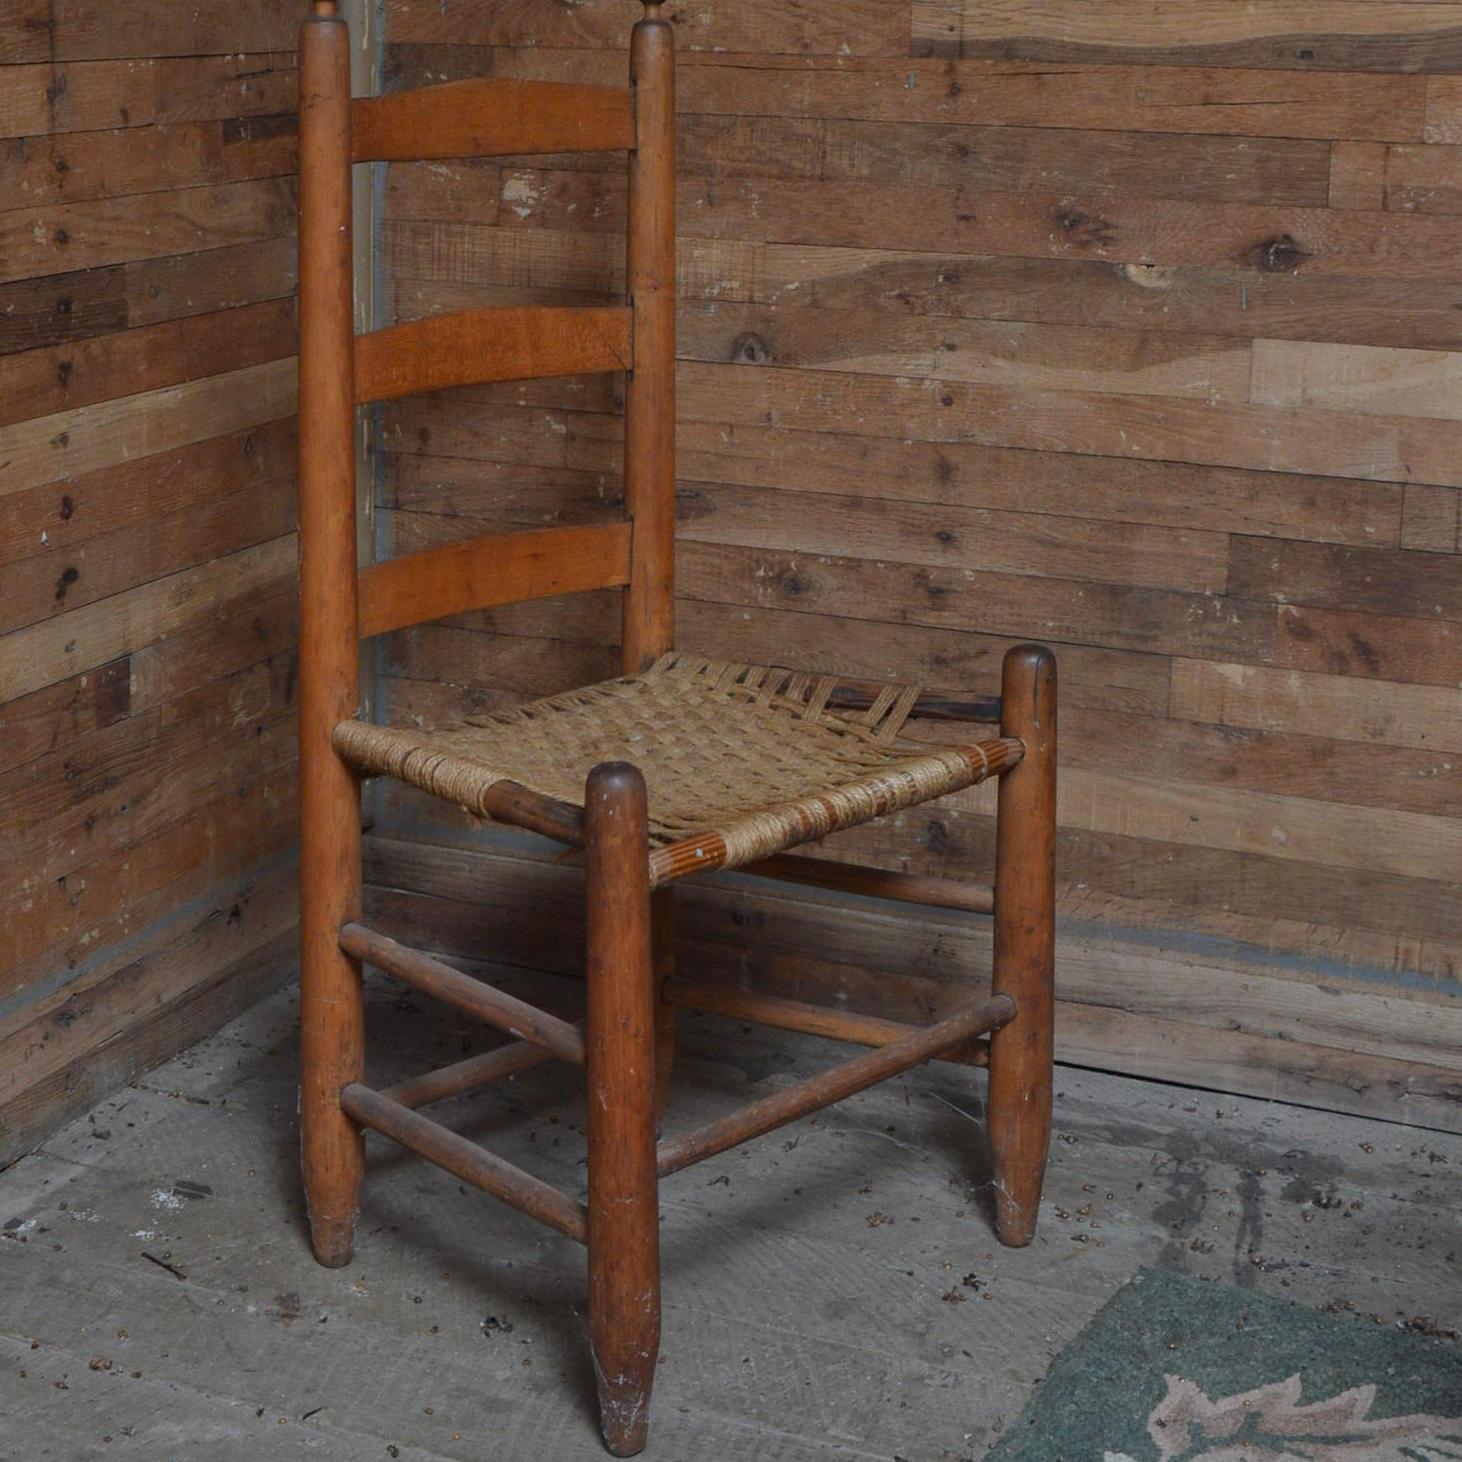 Primitive Shaker Style Ladder Back Chair With Woven Seat ...